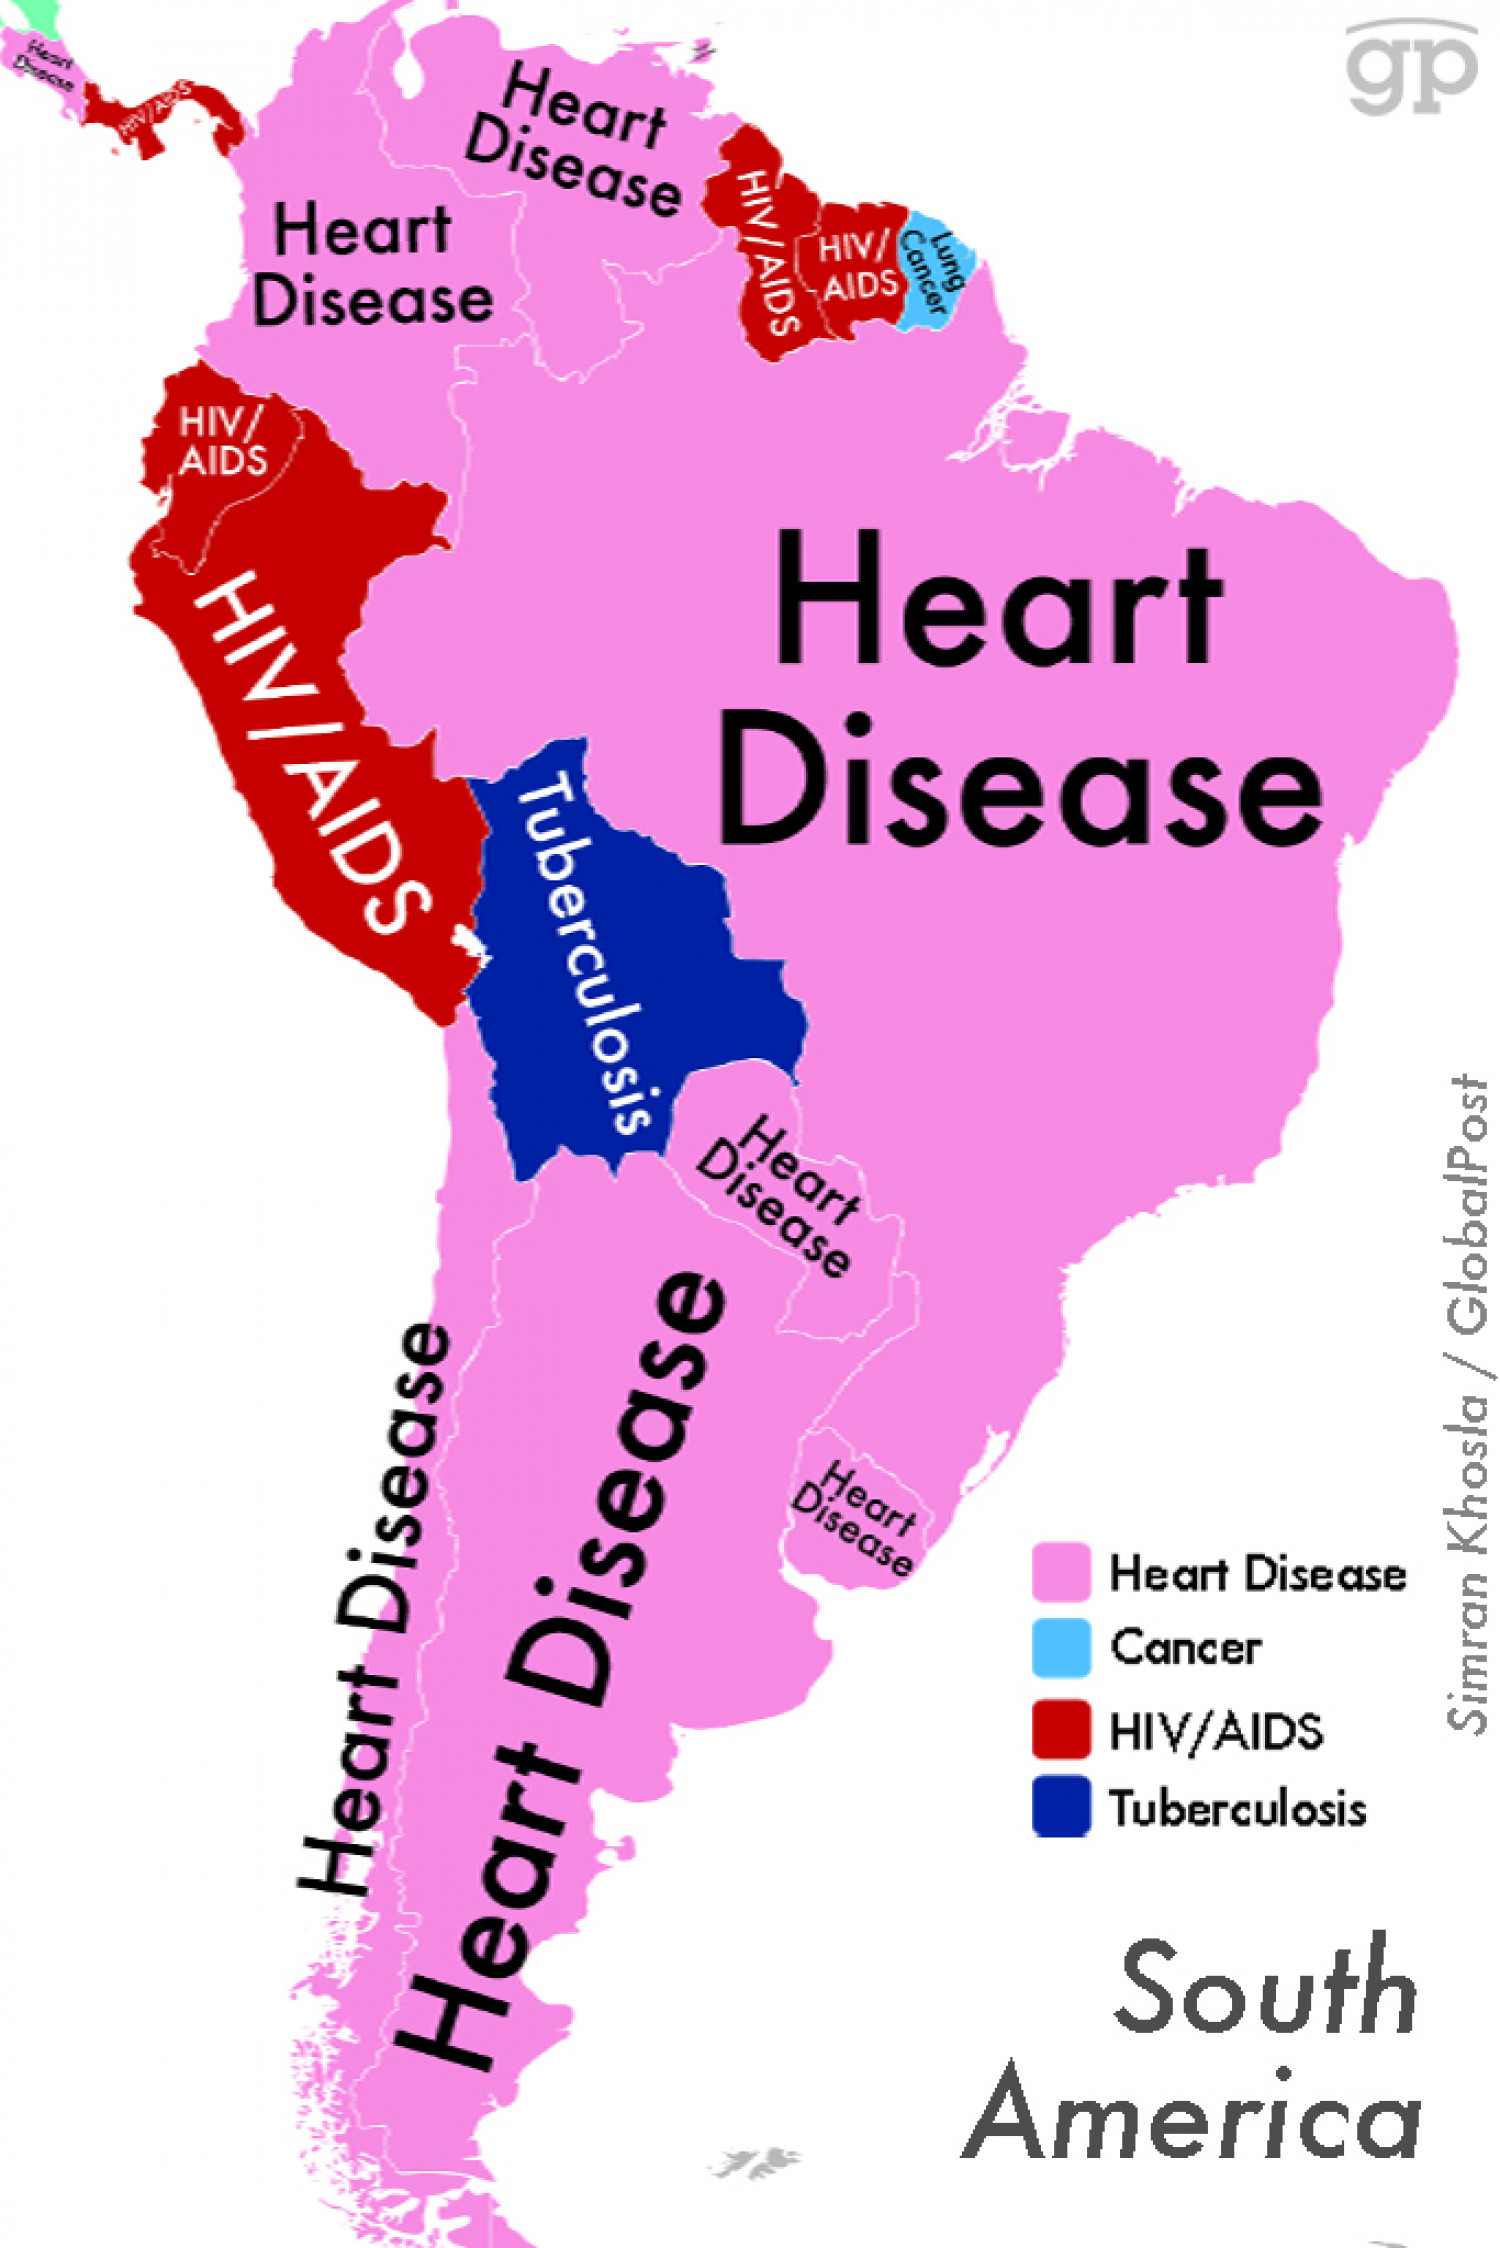 World Diseases (South America) Infographic